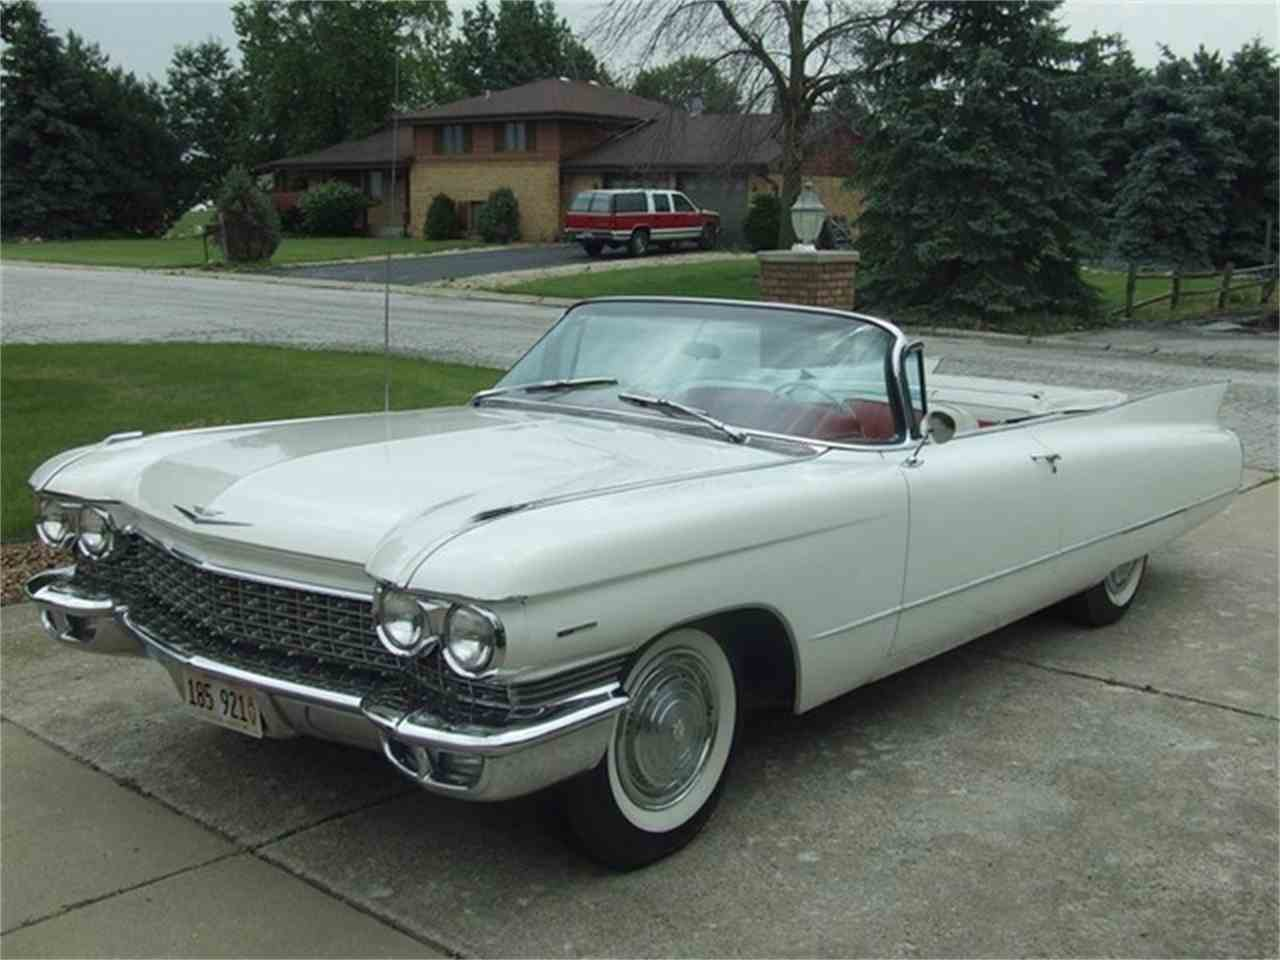 1960 Cadillac Coupe Deville For Sale: 1960 Cadillac DeVille For Sale